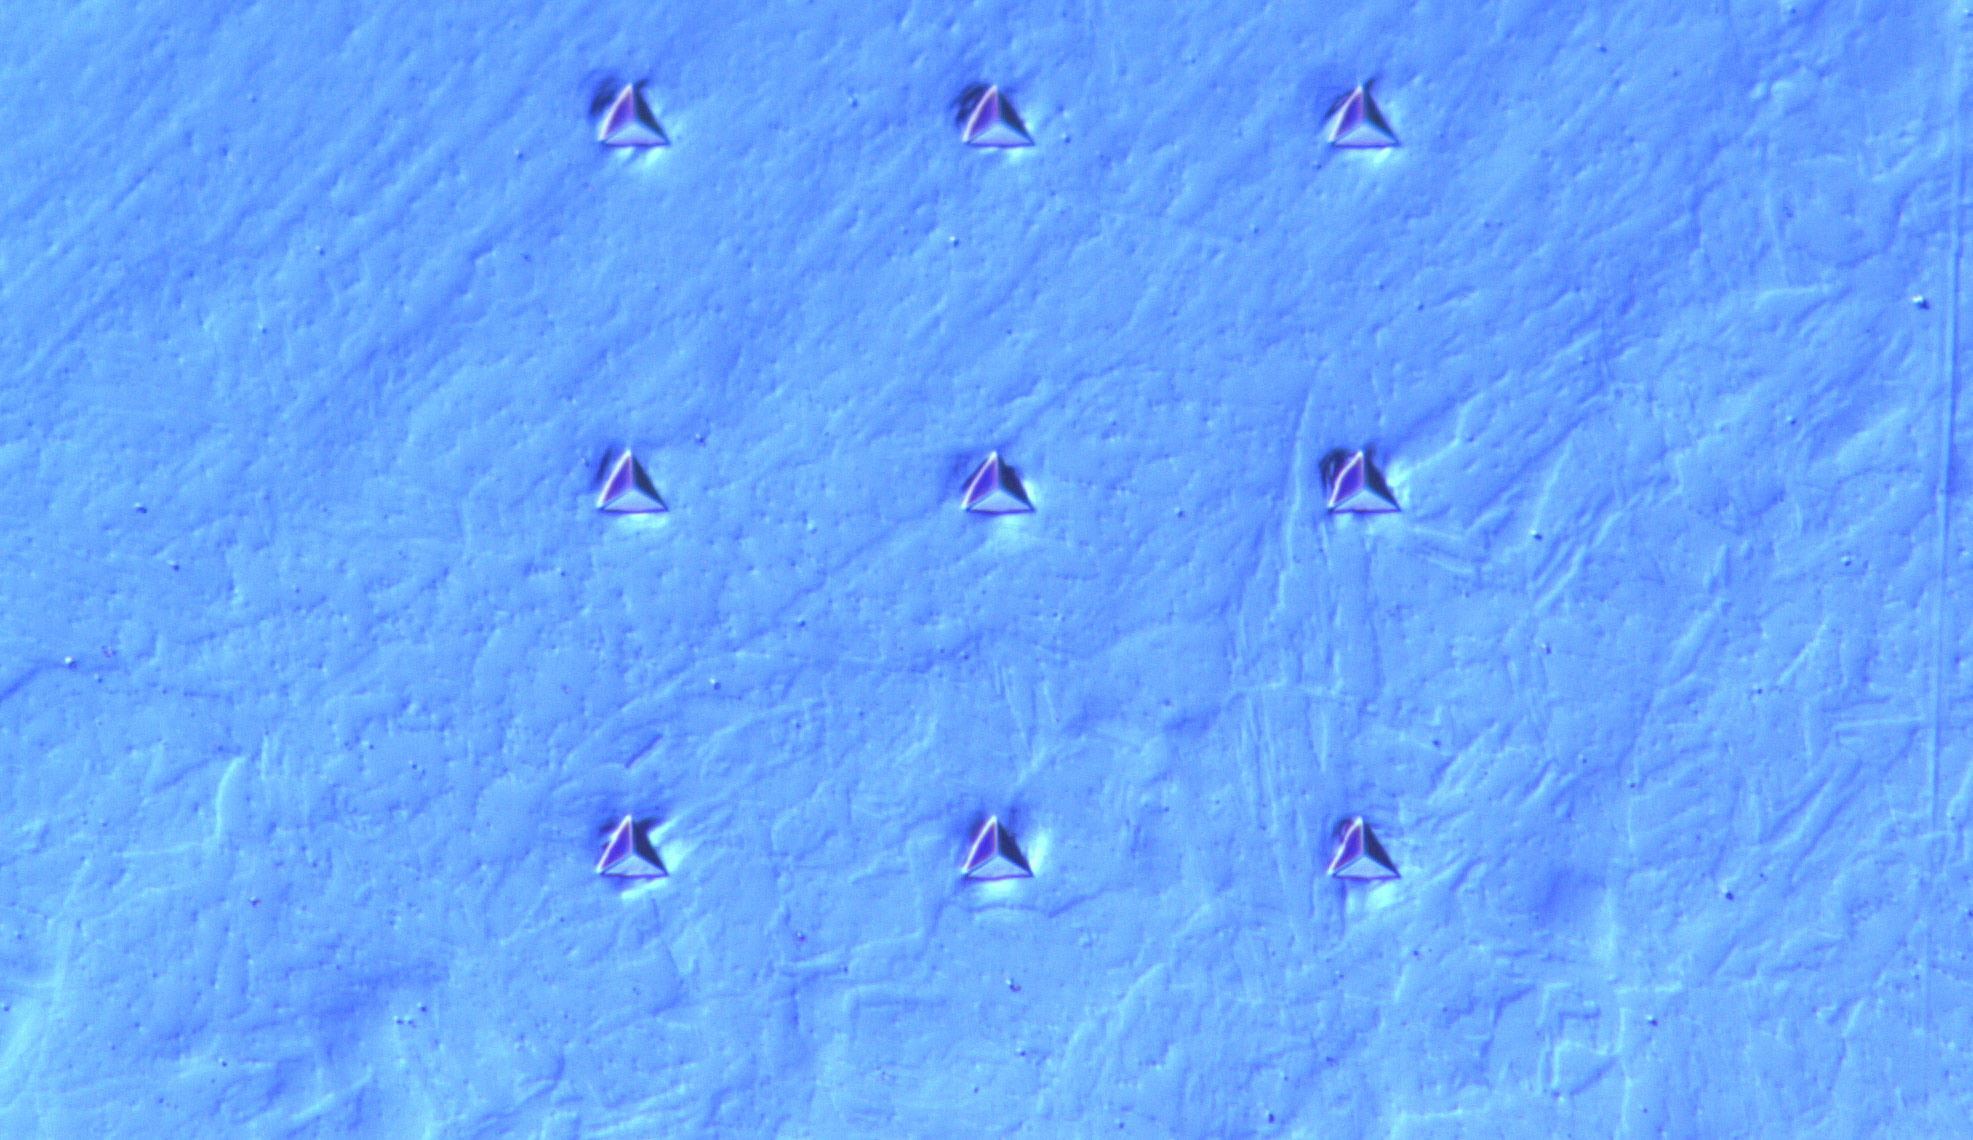 Array of indents in an ion-irradiated T91 steel viewed by optical microscopy